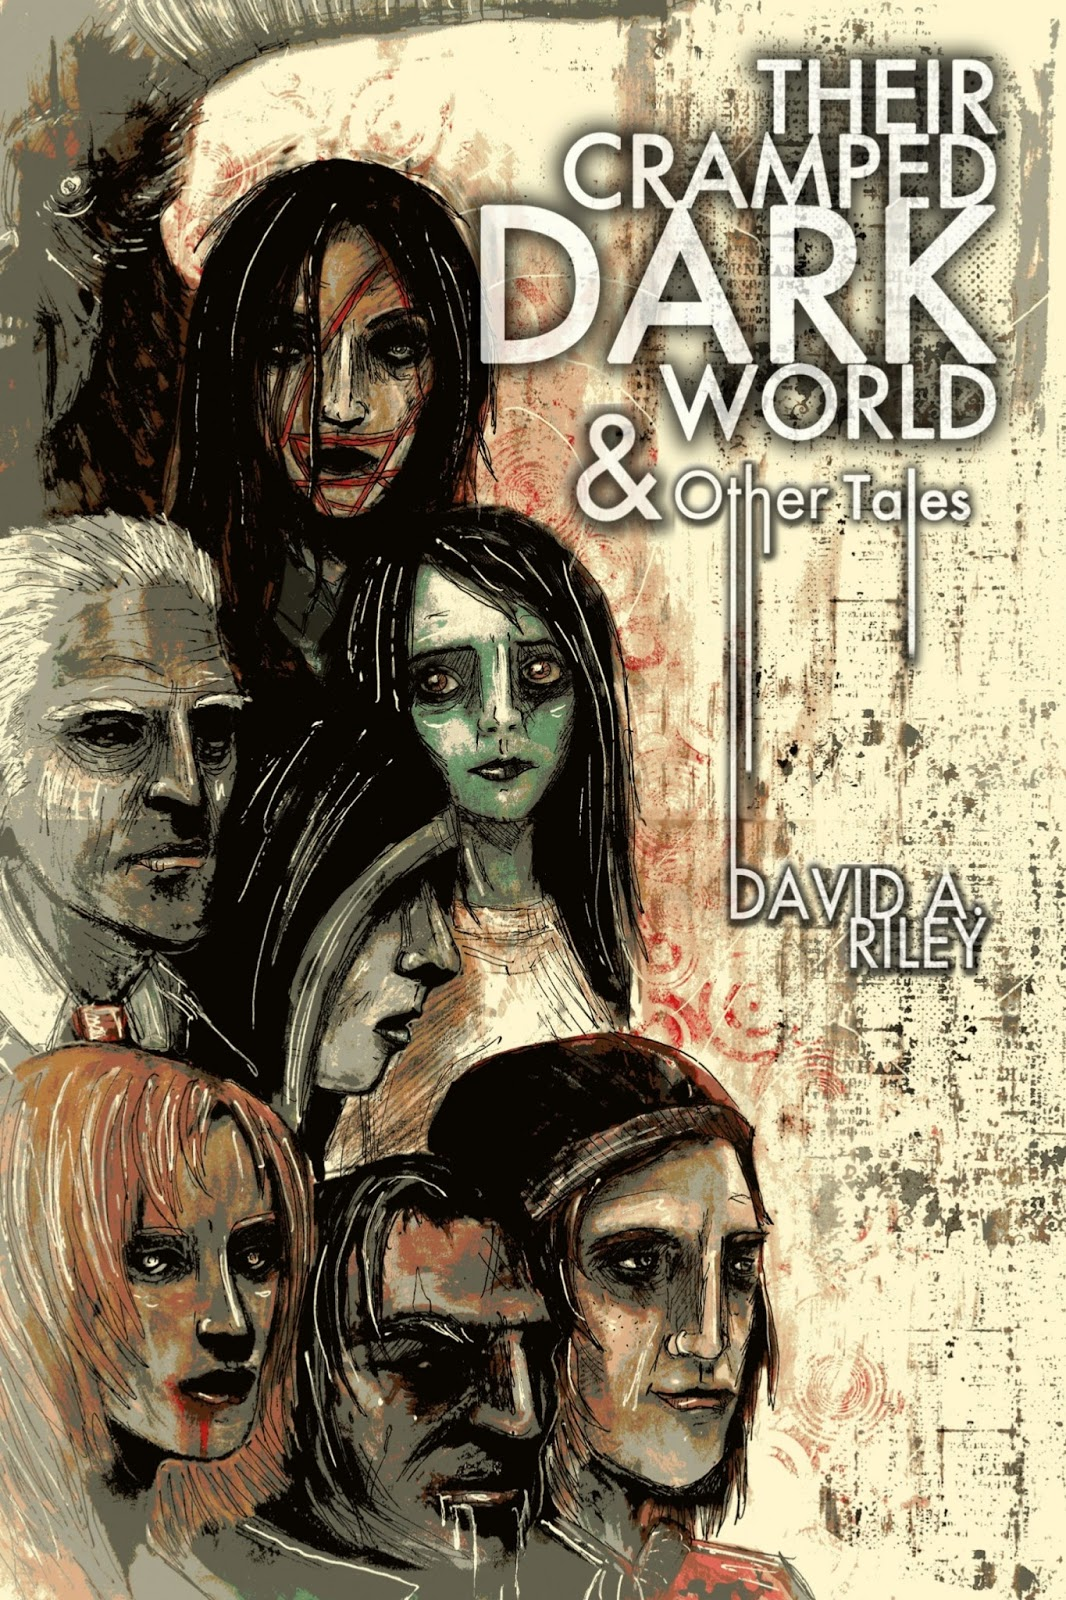 Their Cramped Dark World and Other Tales by David A. Riley